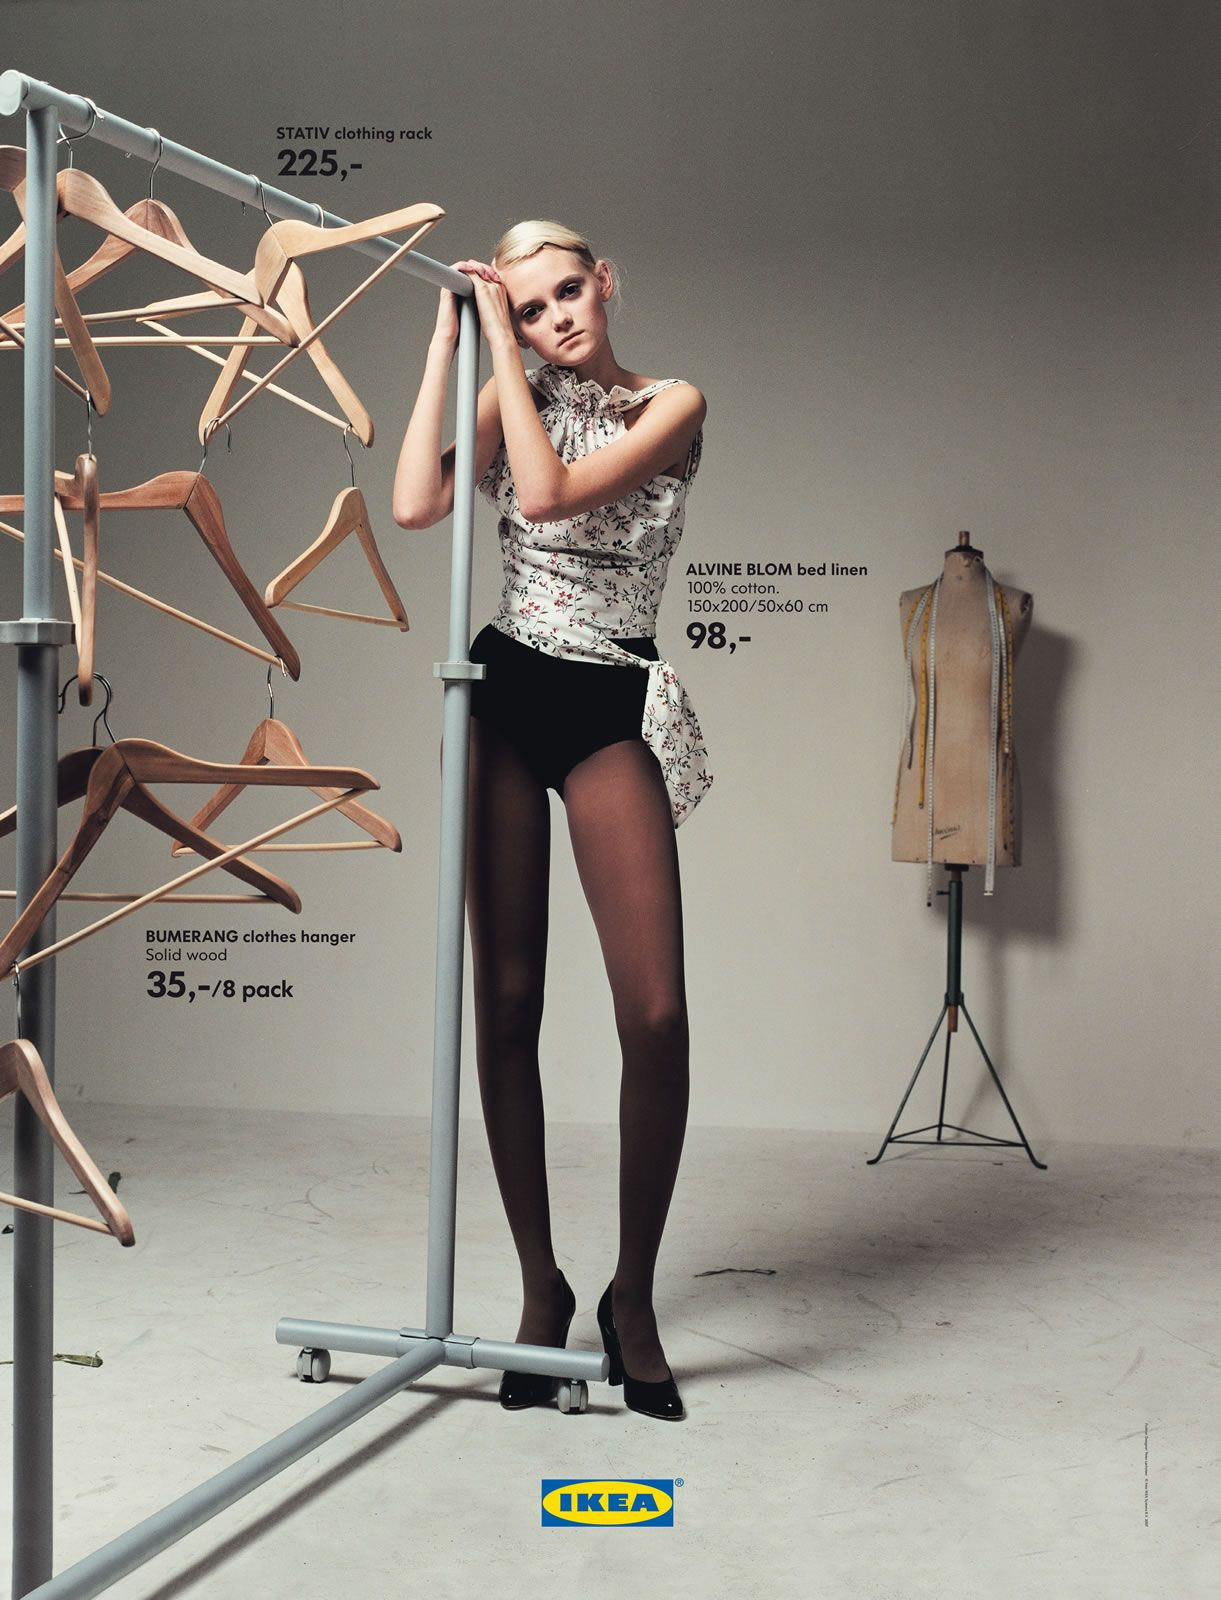 Ikea fashion agency ddb oslo norway art director for Fashion design agency